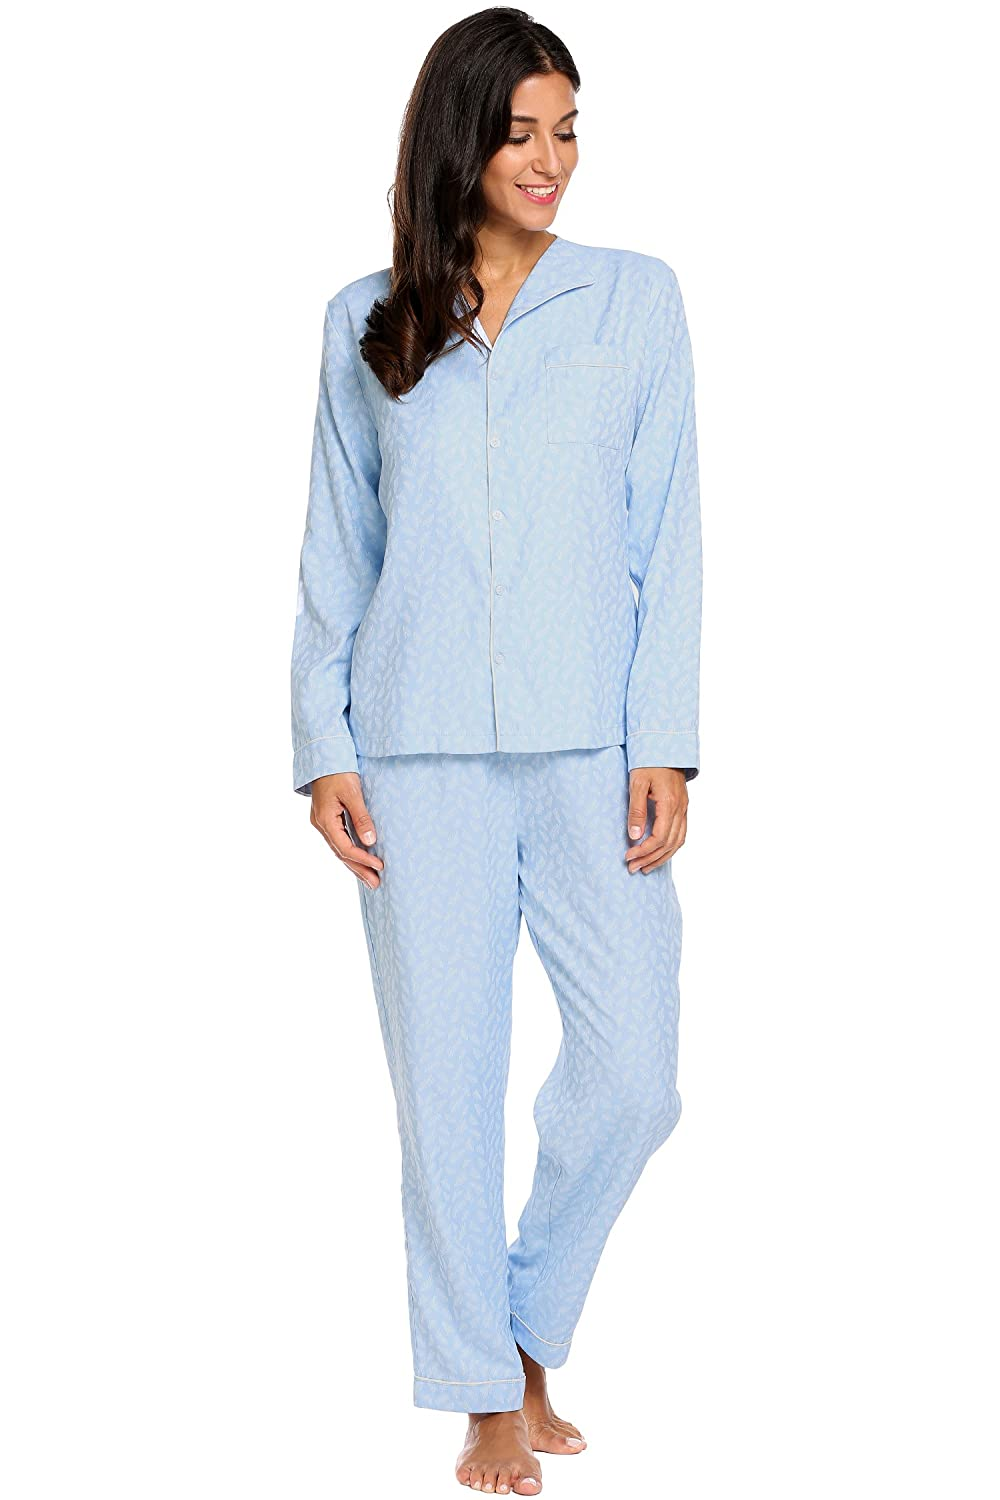 Ekouaer Women's Long Sleeve Top Pant Comfort Sleepwear Long Sleeve Pajama AMK005406